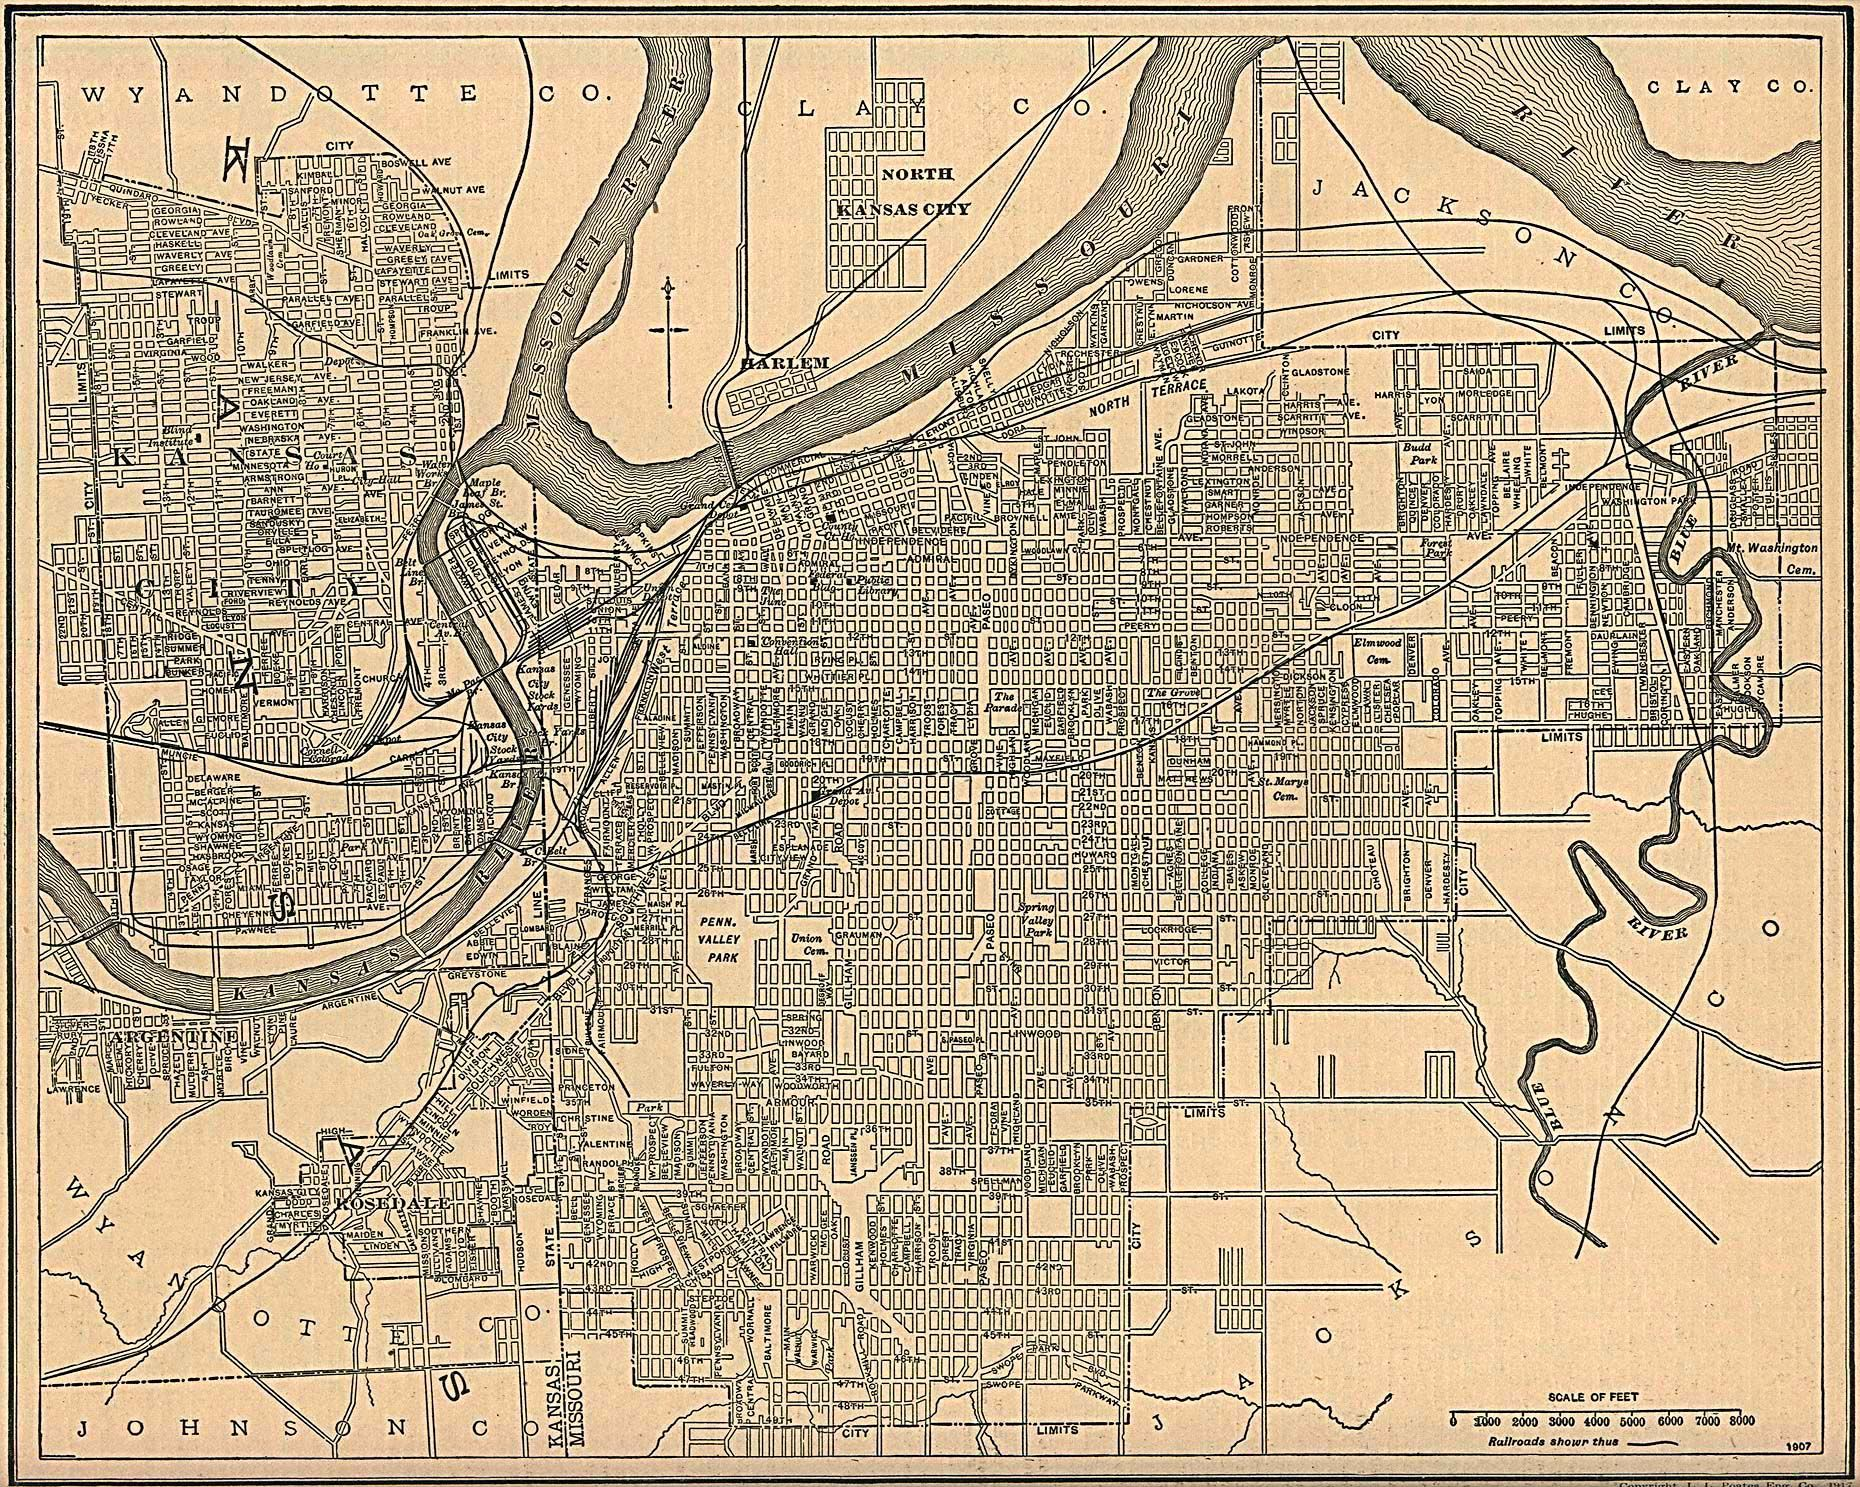 Kansas City Map, Kansas and Missouri 1907 | Geometry in 2019 ... on history kansas railroad map, university city mo street map, wilson county ks map, manhattan kansas street map, emporia kansas street map, pittsburg kansas street map, easy kansas highway map, westport street map, dekalb county street map, jackson county street map, wichita kansas county map, kansas and oklahoma county map, coffeyville kansas street map, lee's summit street map, university of minnesota street map, hutchinson city map, kansas cit map, indianapolis street map, overland park kansas street map, northern kentucky street map,